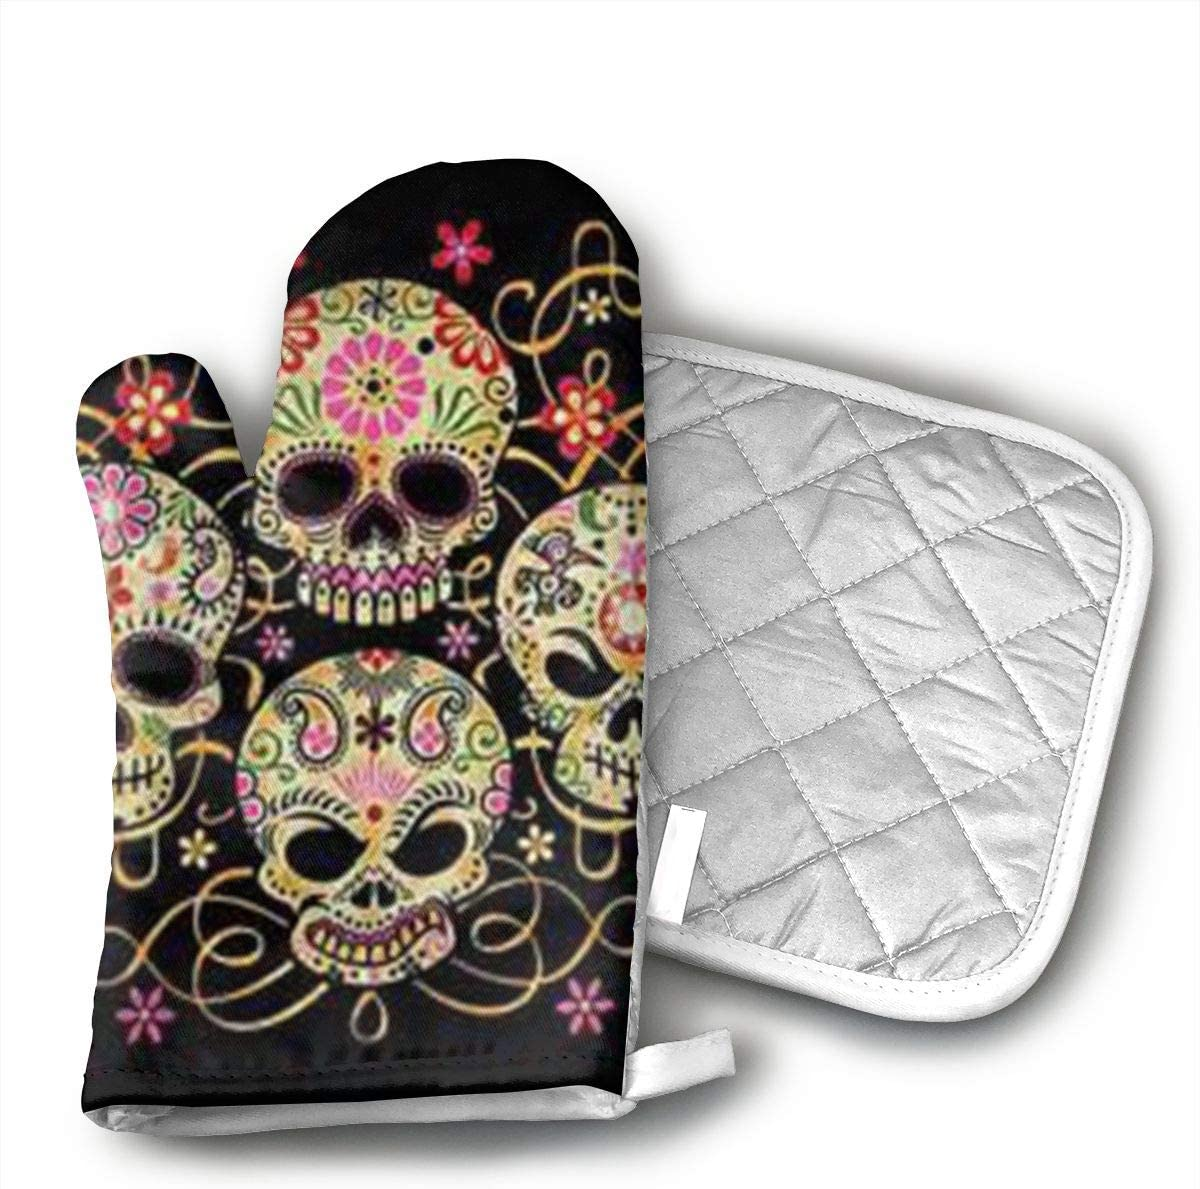 CHWEYAQ ZVNQYGFGA69 Day of The Dead Sugar Skull Oven Mitts with Nice Printing Cotton Lining, Heat Resistant to Kitchen Oven Gloves Pot Holder for Cooking